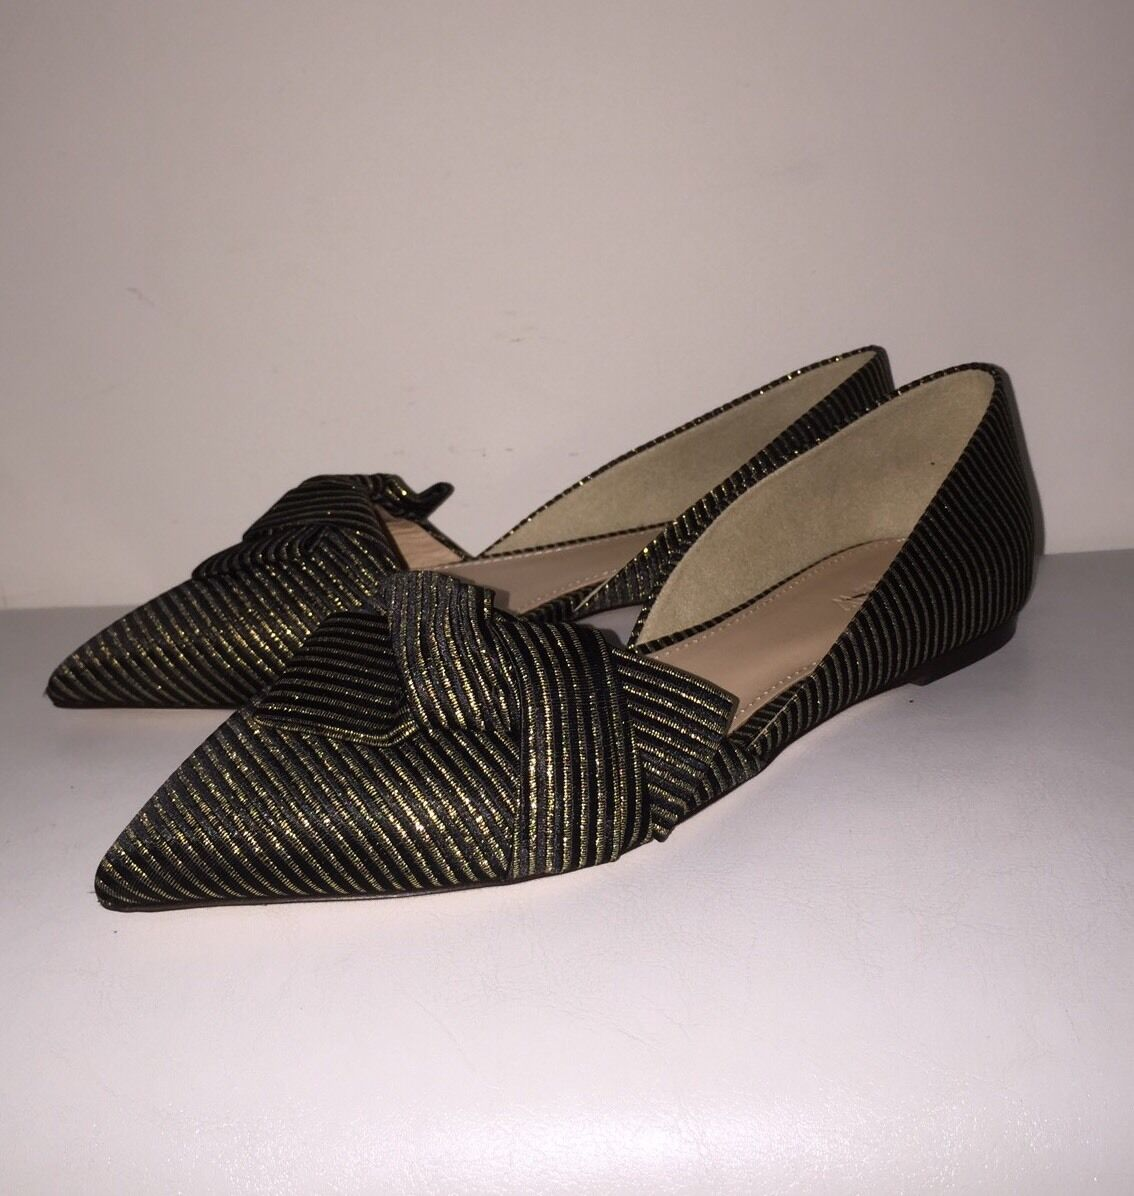 J.Crew 158 Sloan Striped D'Orsay flats with obi bow 6 e4667 schwarz gold stripe